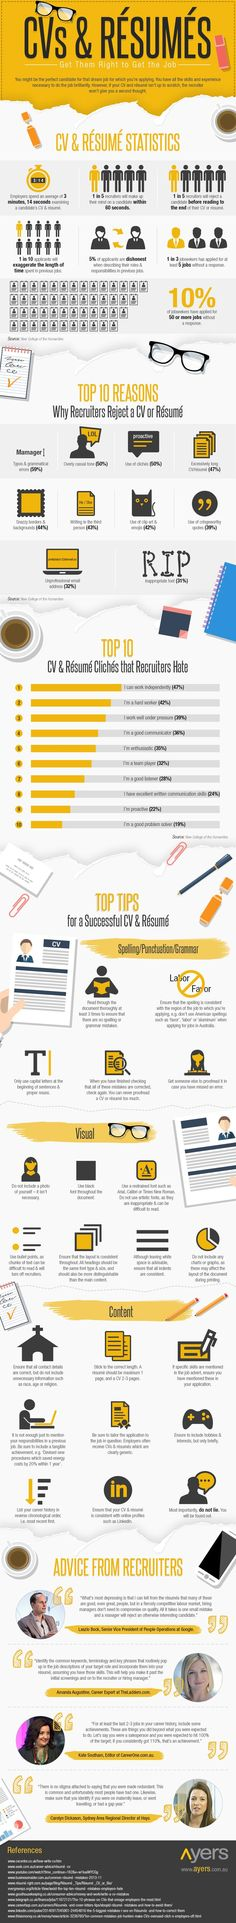 1223 Best Infographic Visual Resumes images Infographic resume, Cv